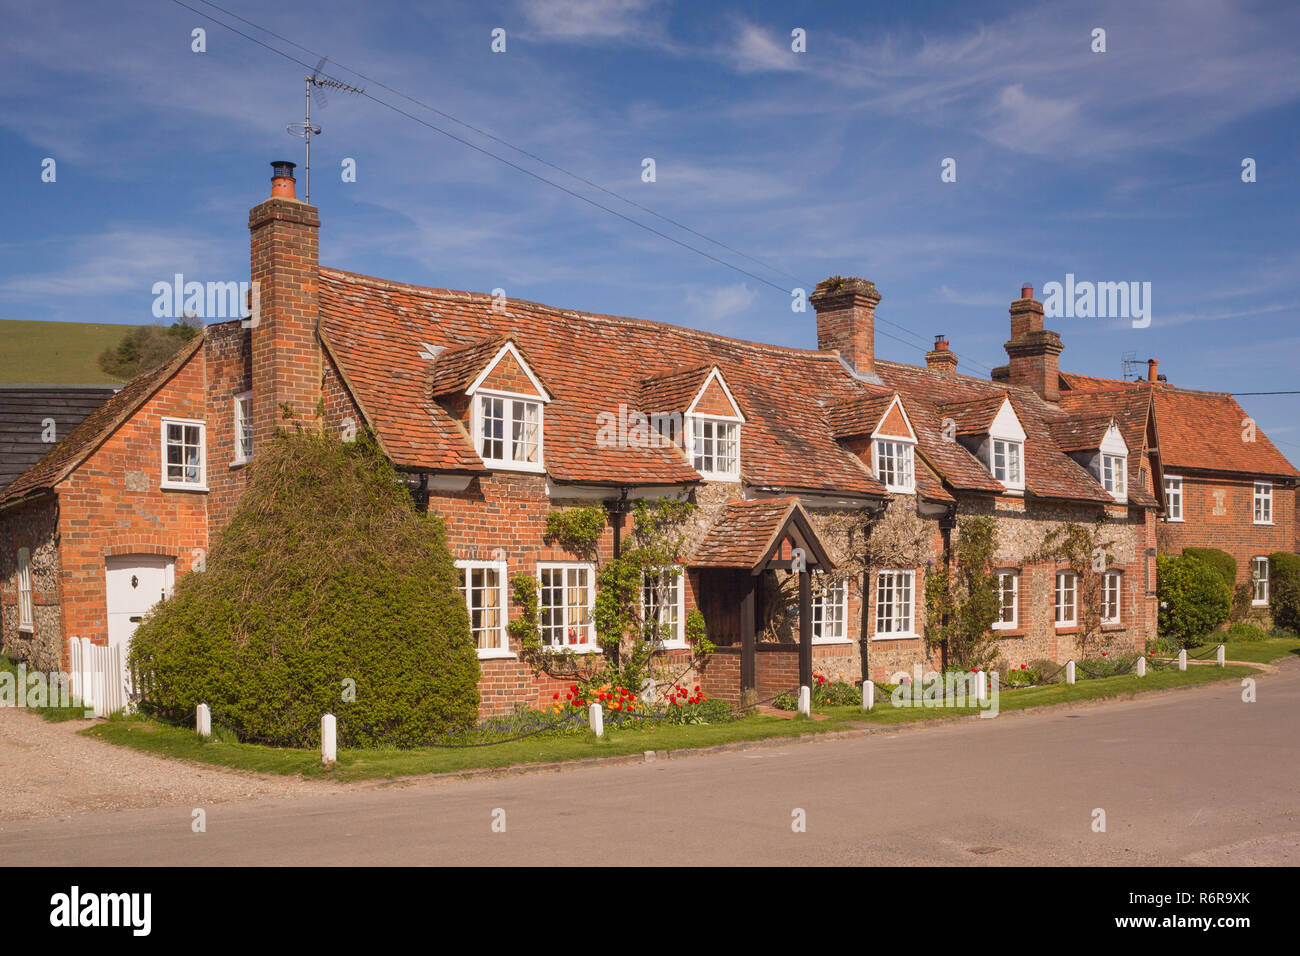 Cottages in the Chiltern village of Turville, Buckinghamshire - Stock Image